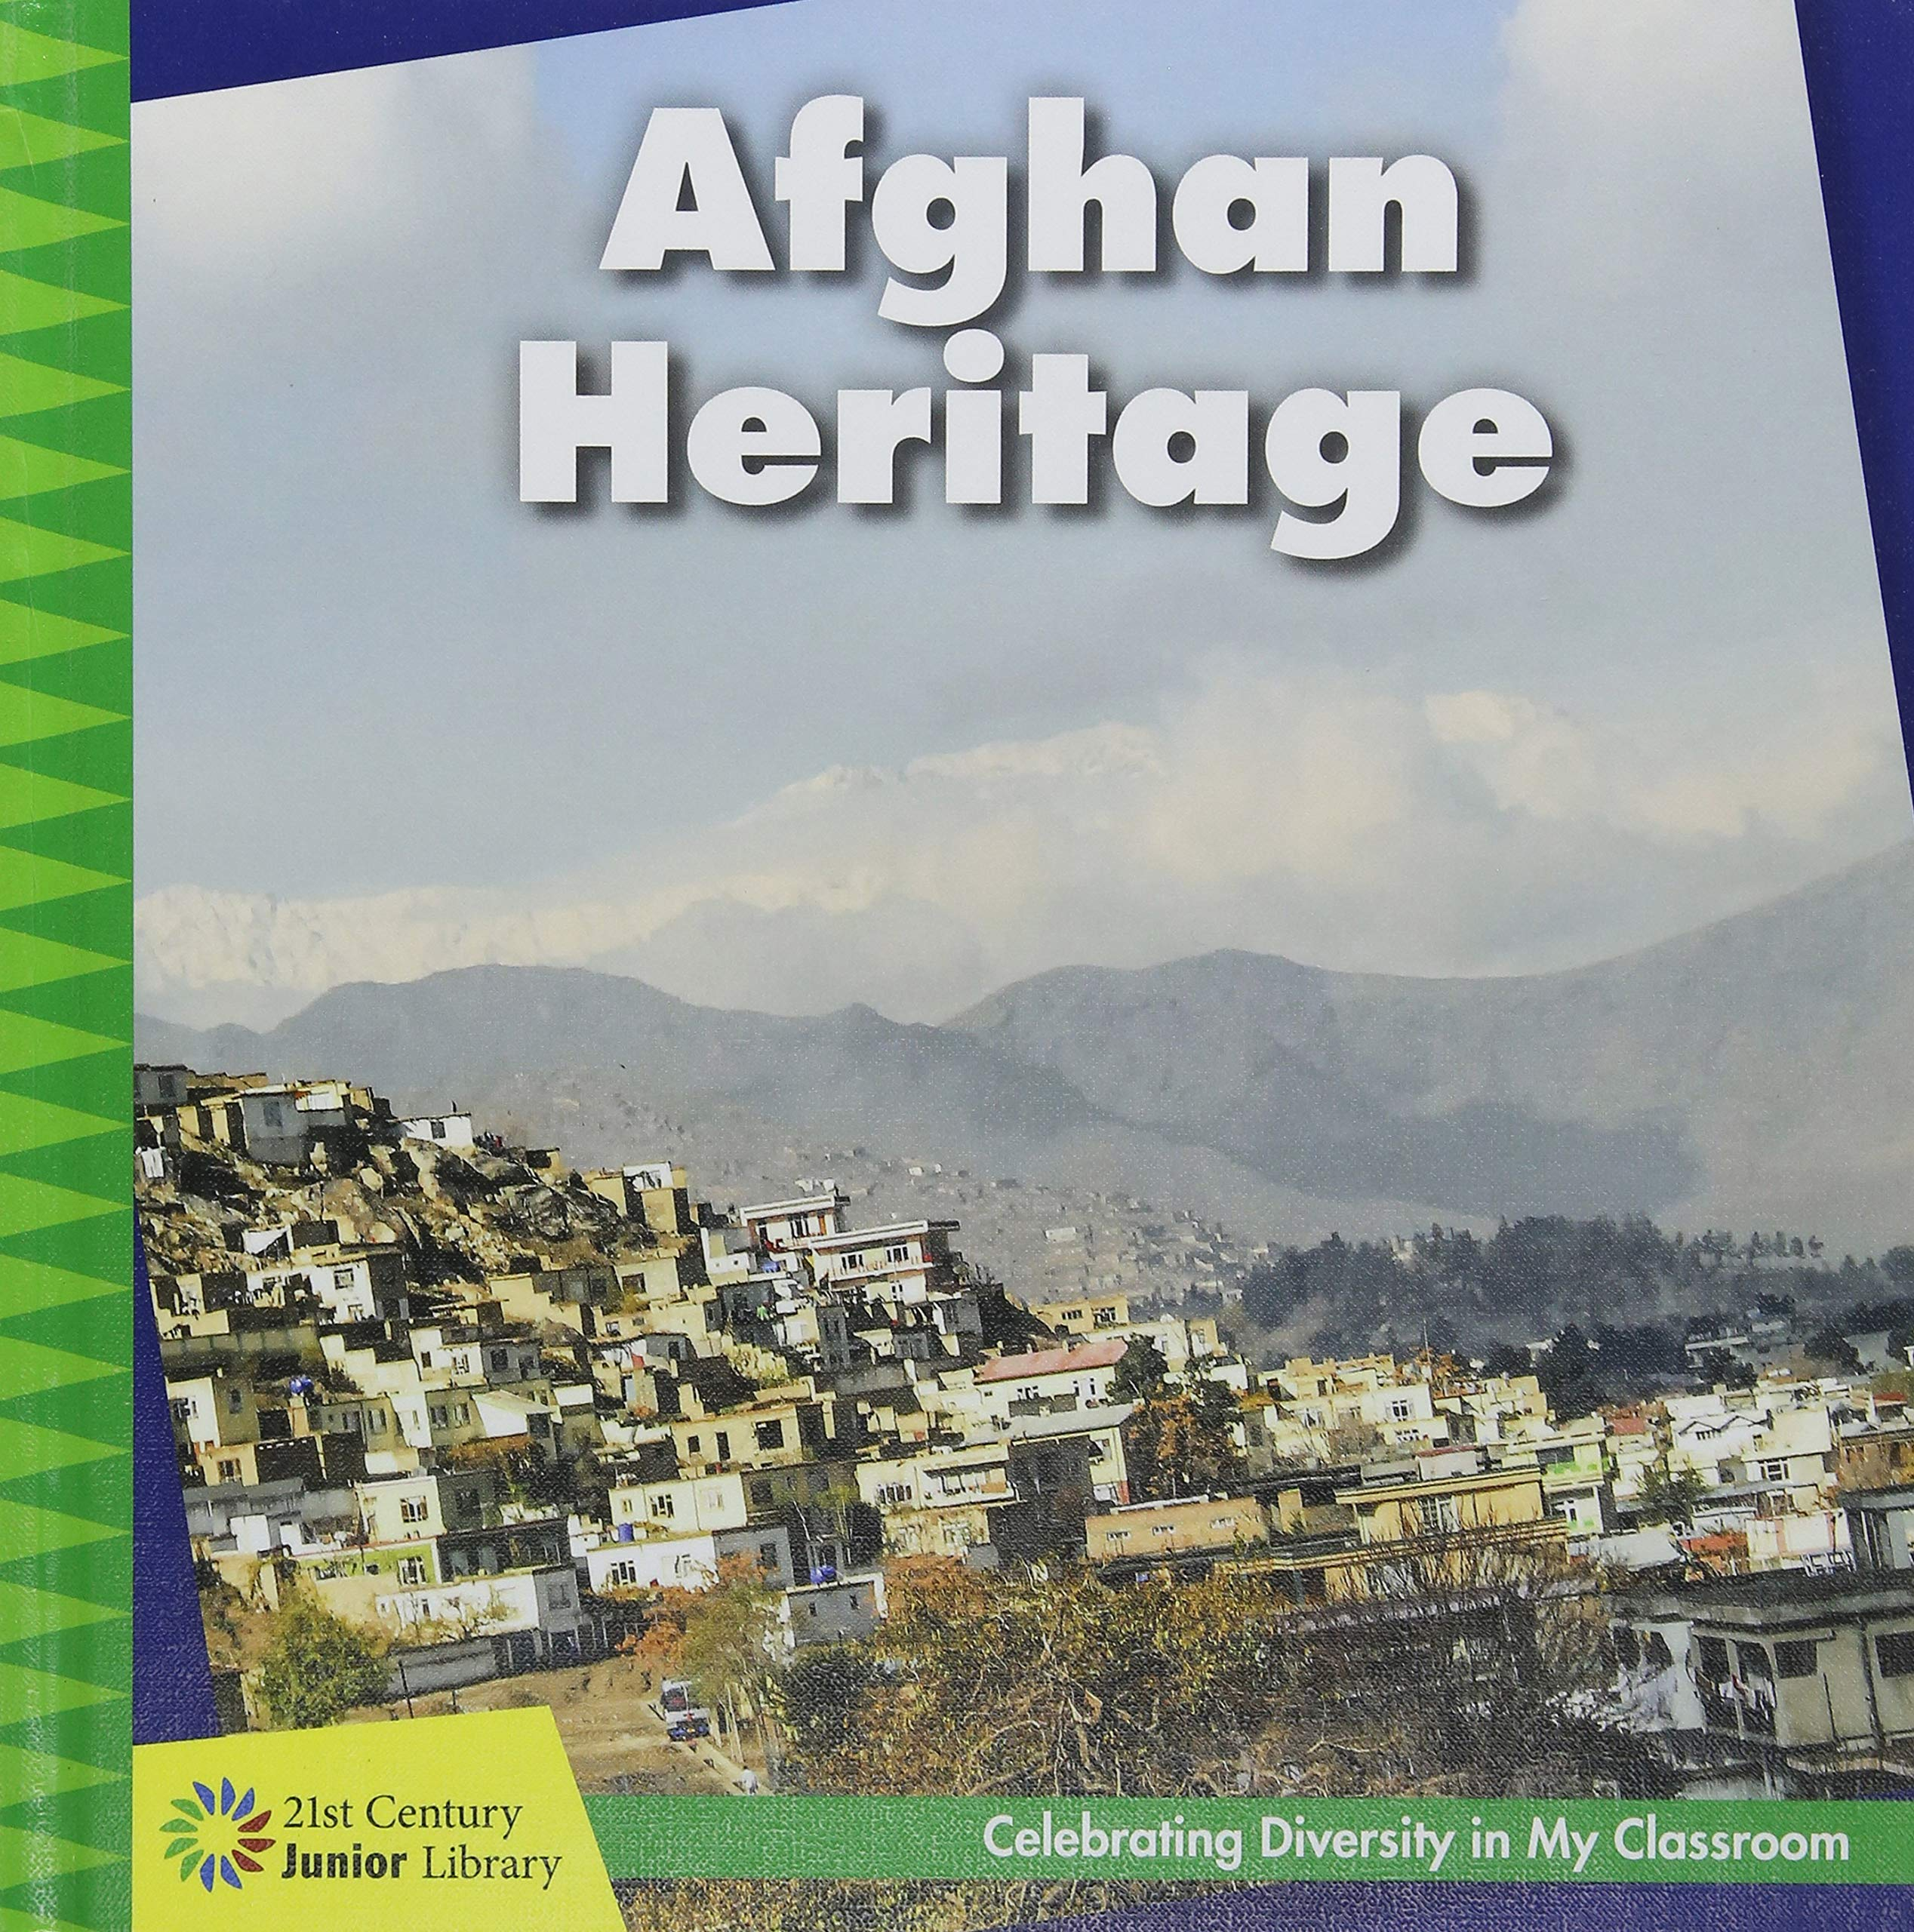 Afghan Heritage (21st Century Junior Library: Celebrating Diversity in My Classroom)